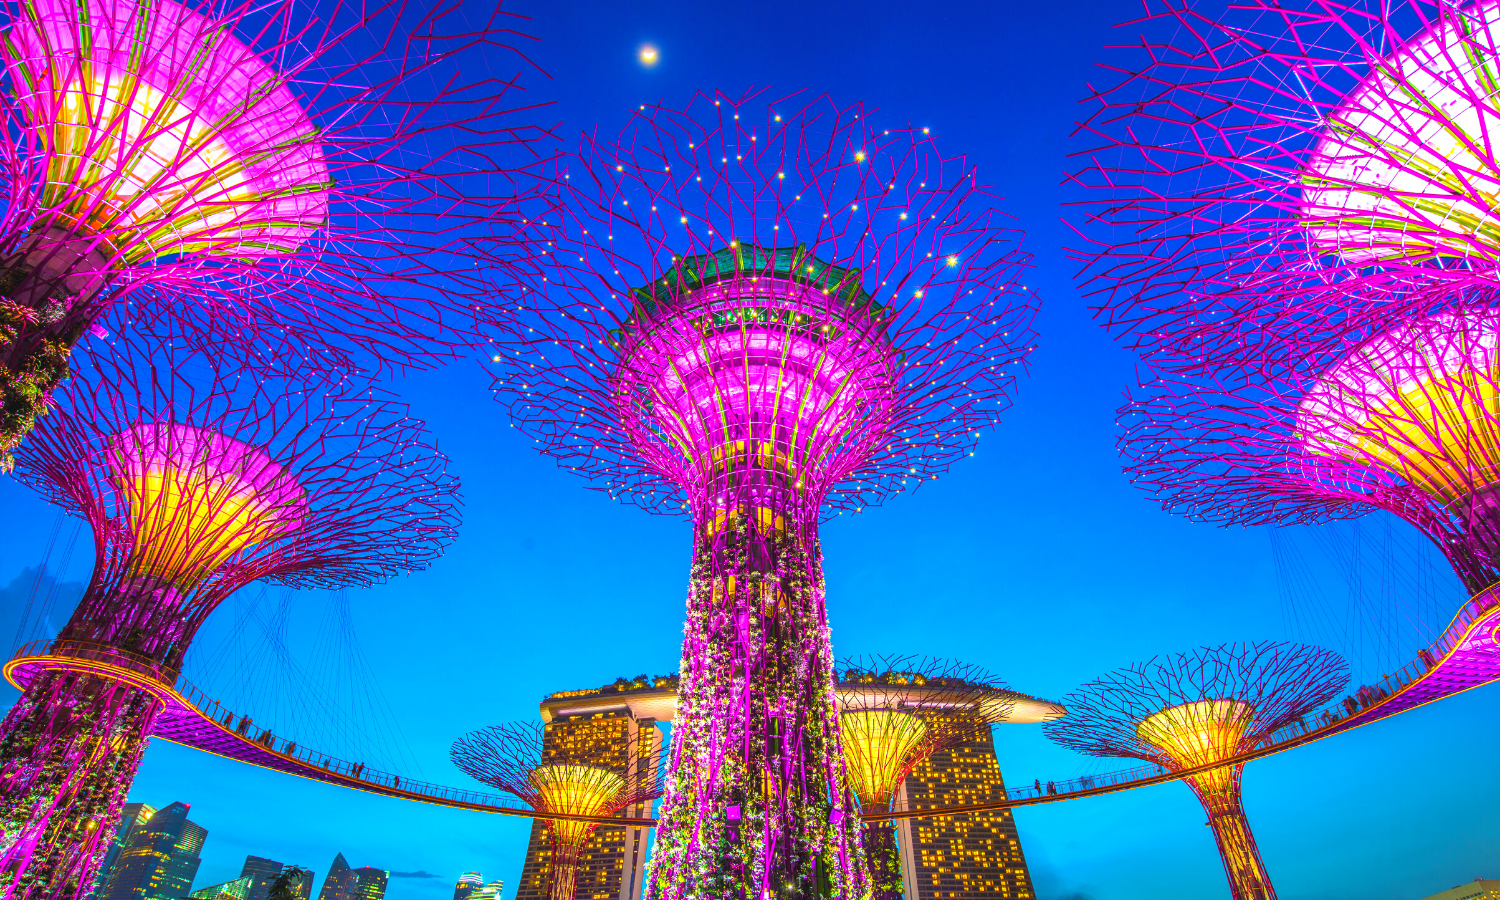 Skygarden trees in Singapore